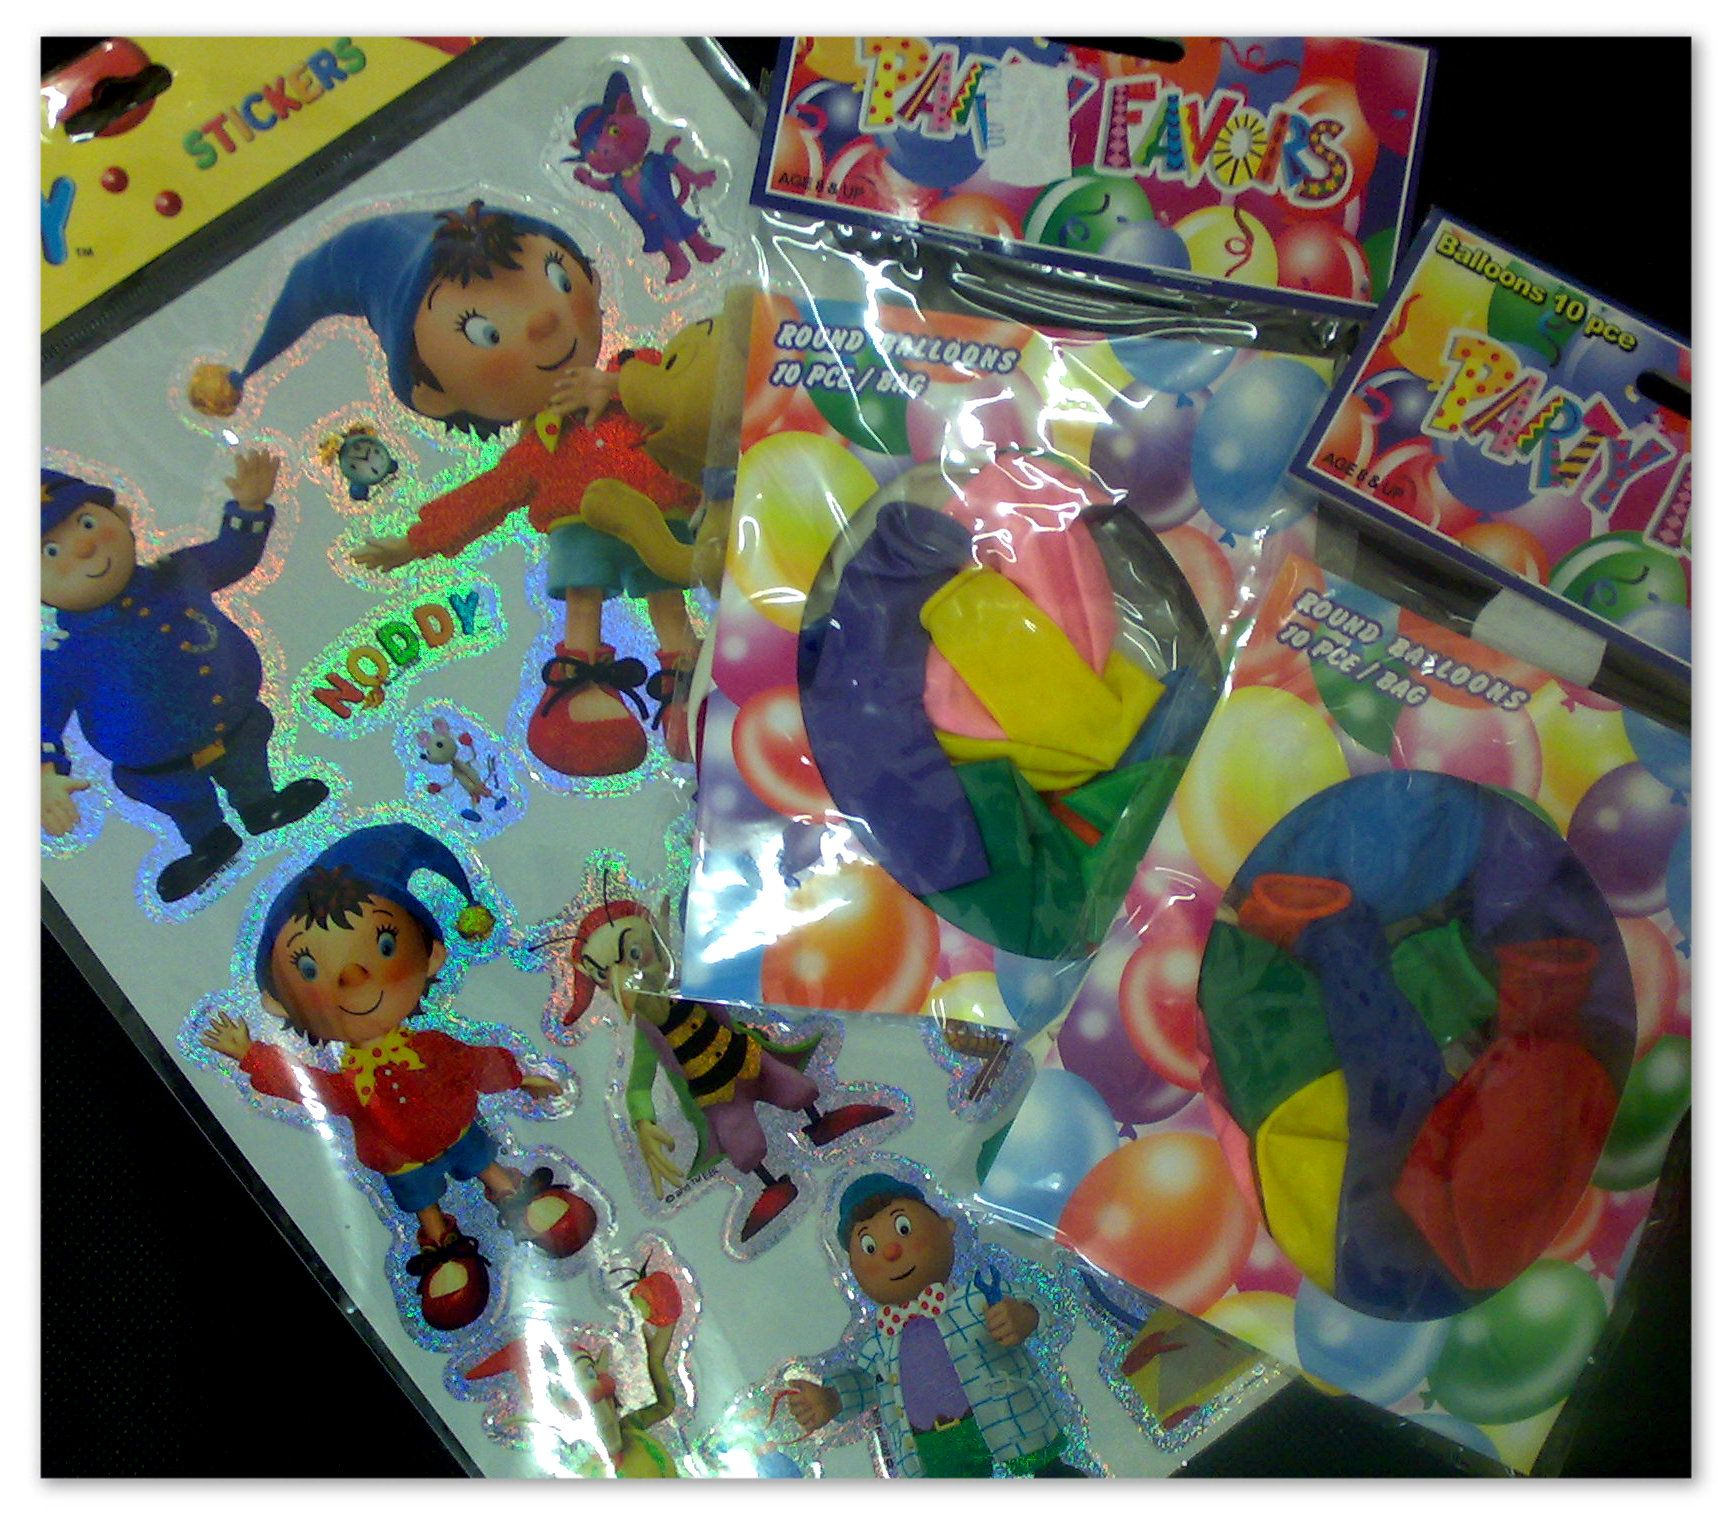 Noddy, Incredibles, Super Man Sticker Packs and Kids Party Balloons ...